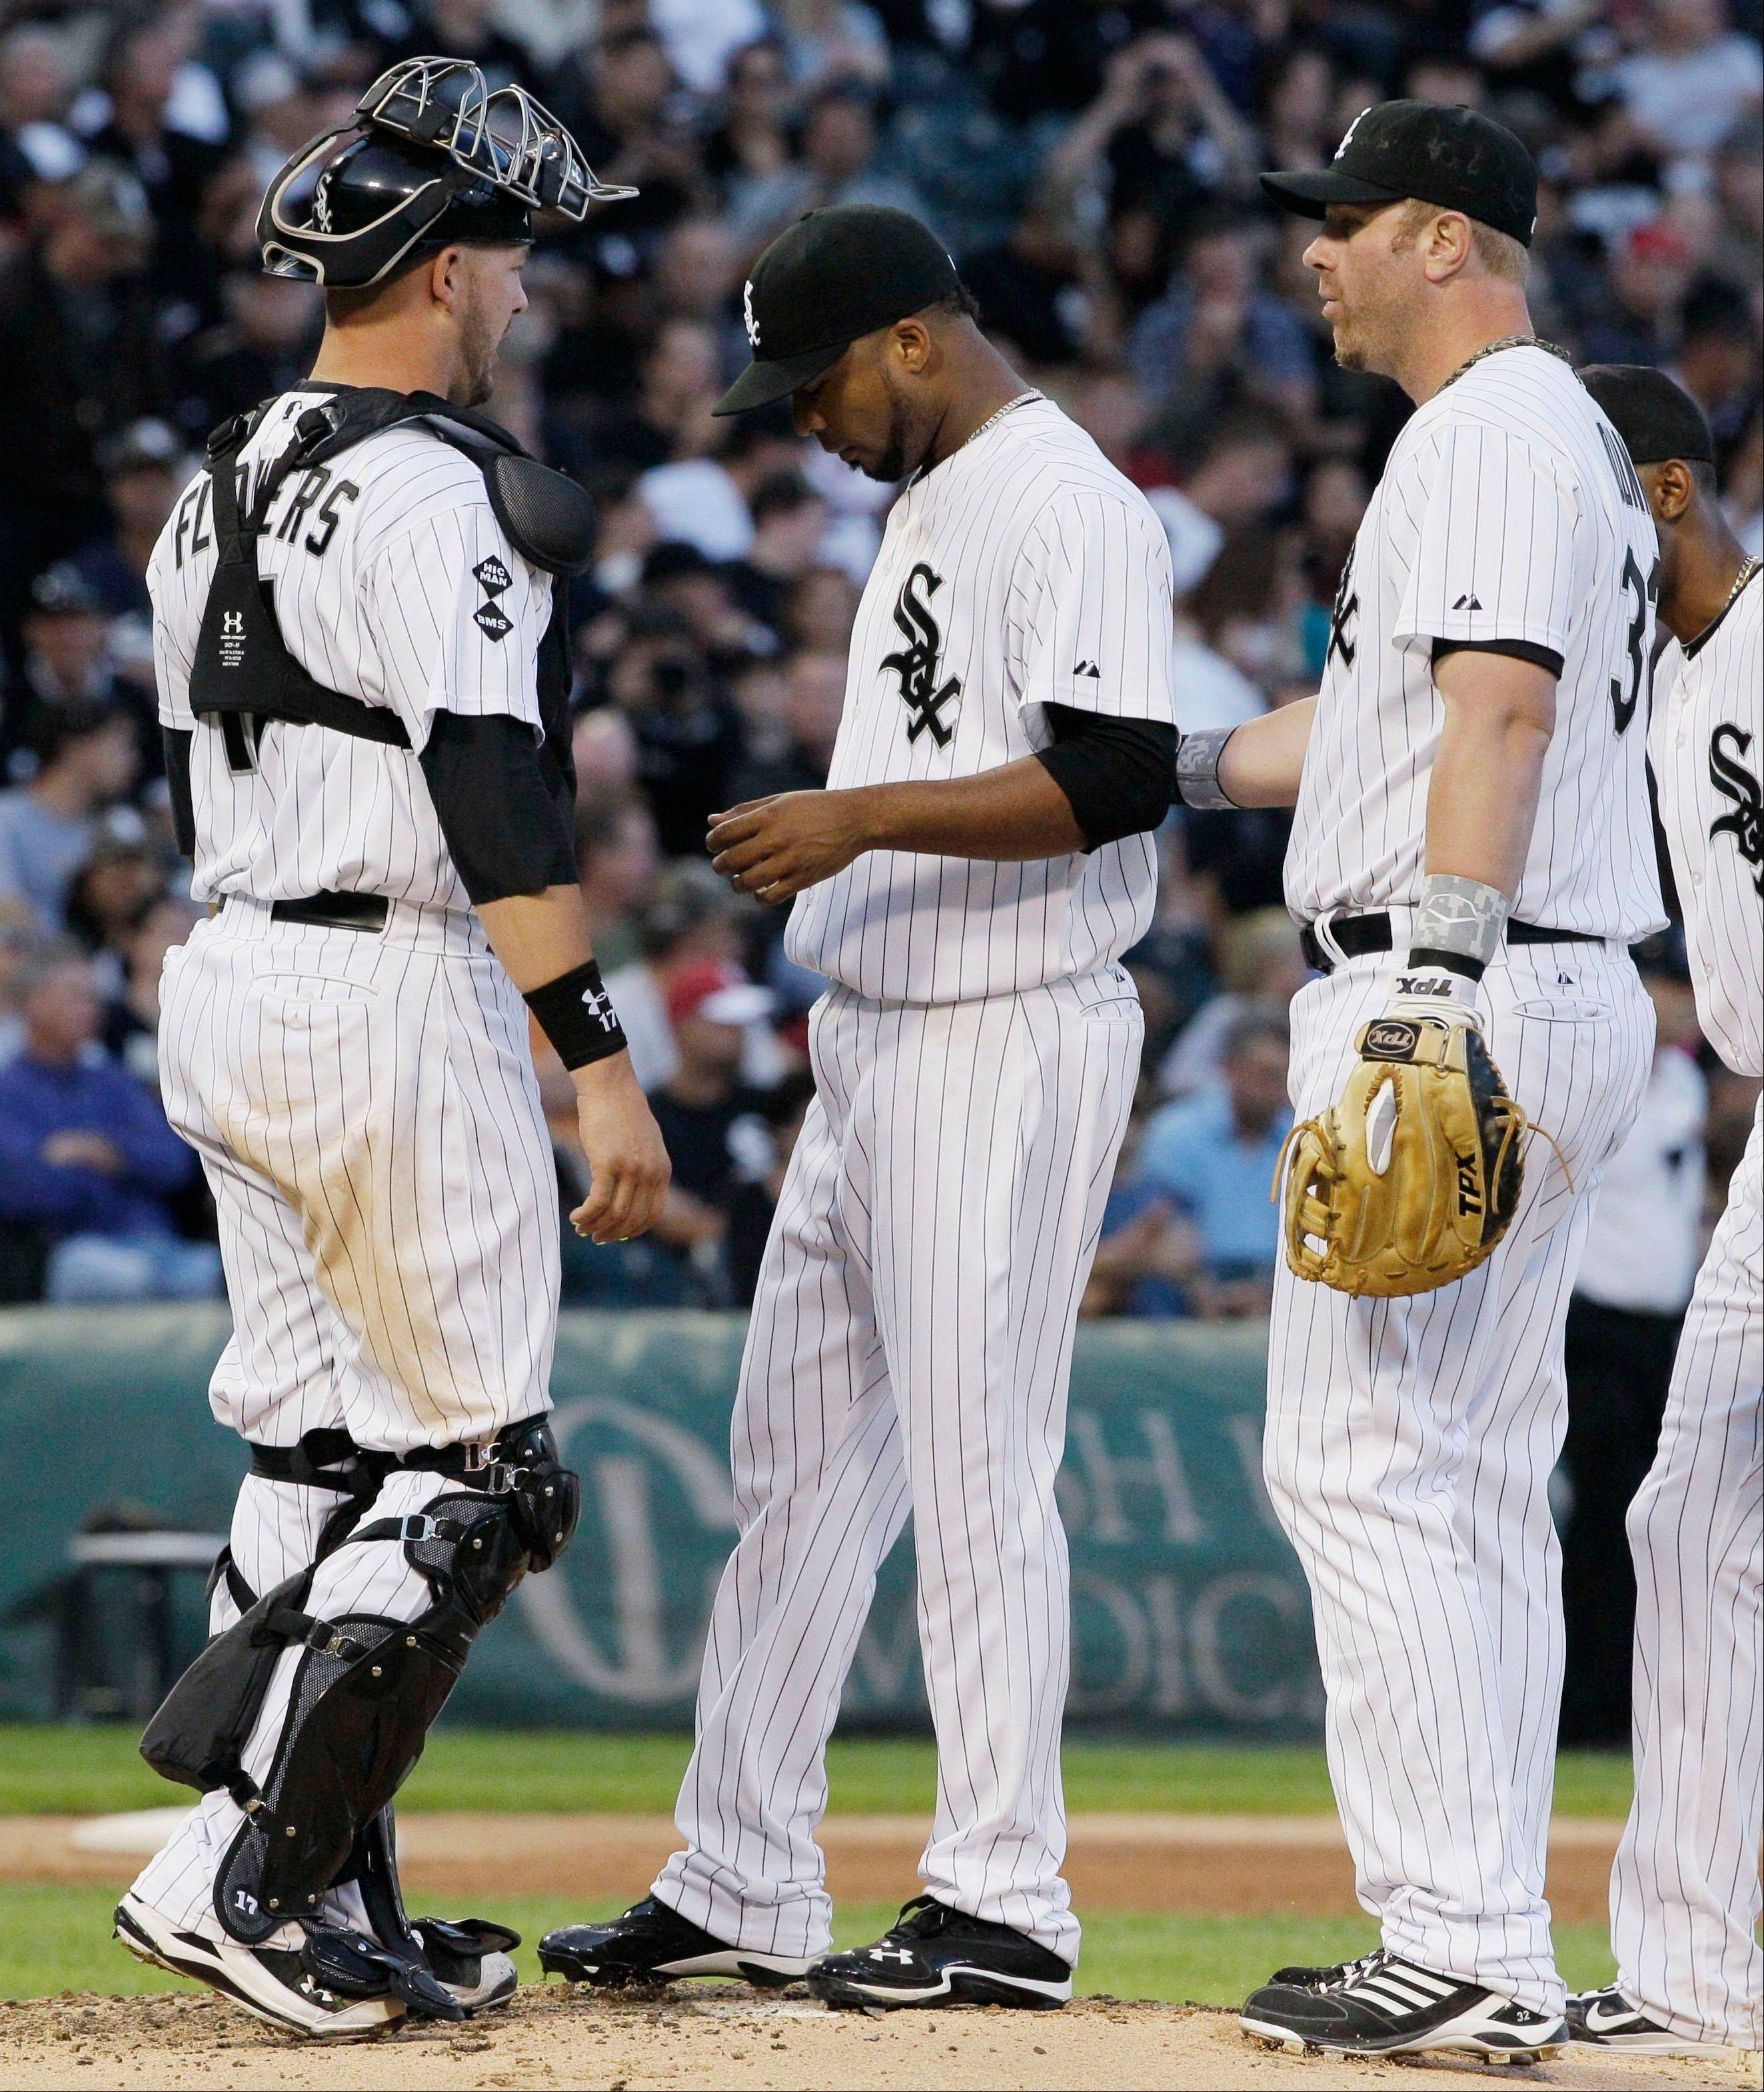 White Sox catcher Tyler Flowers and first baseman Adam Dunn talk to starter Francisco Liriano, middle, after Oakland�s Josh Reddick hit an RBI single in the fourth inning Saturday night. Liriano didn�t make it out of the fourth inning.